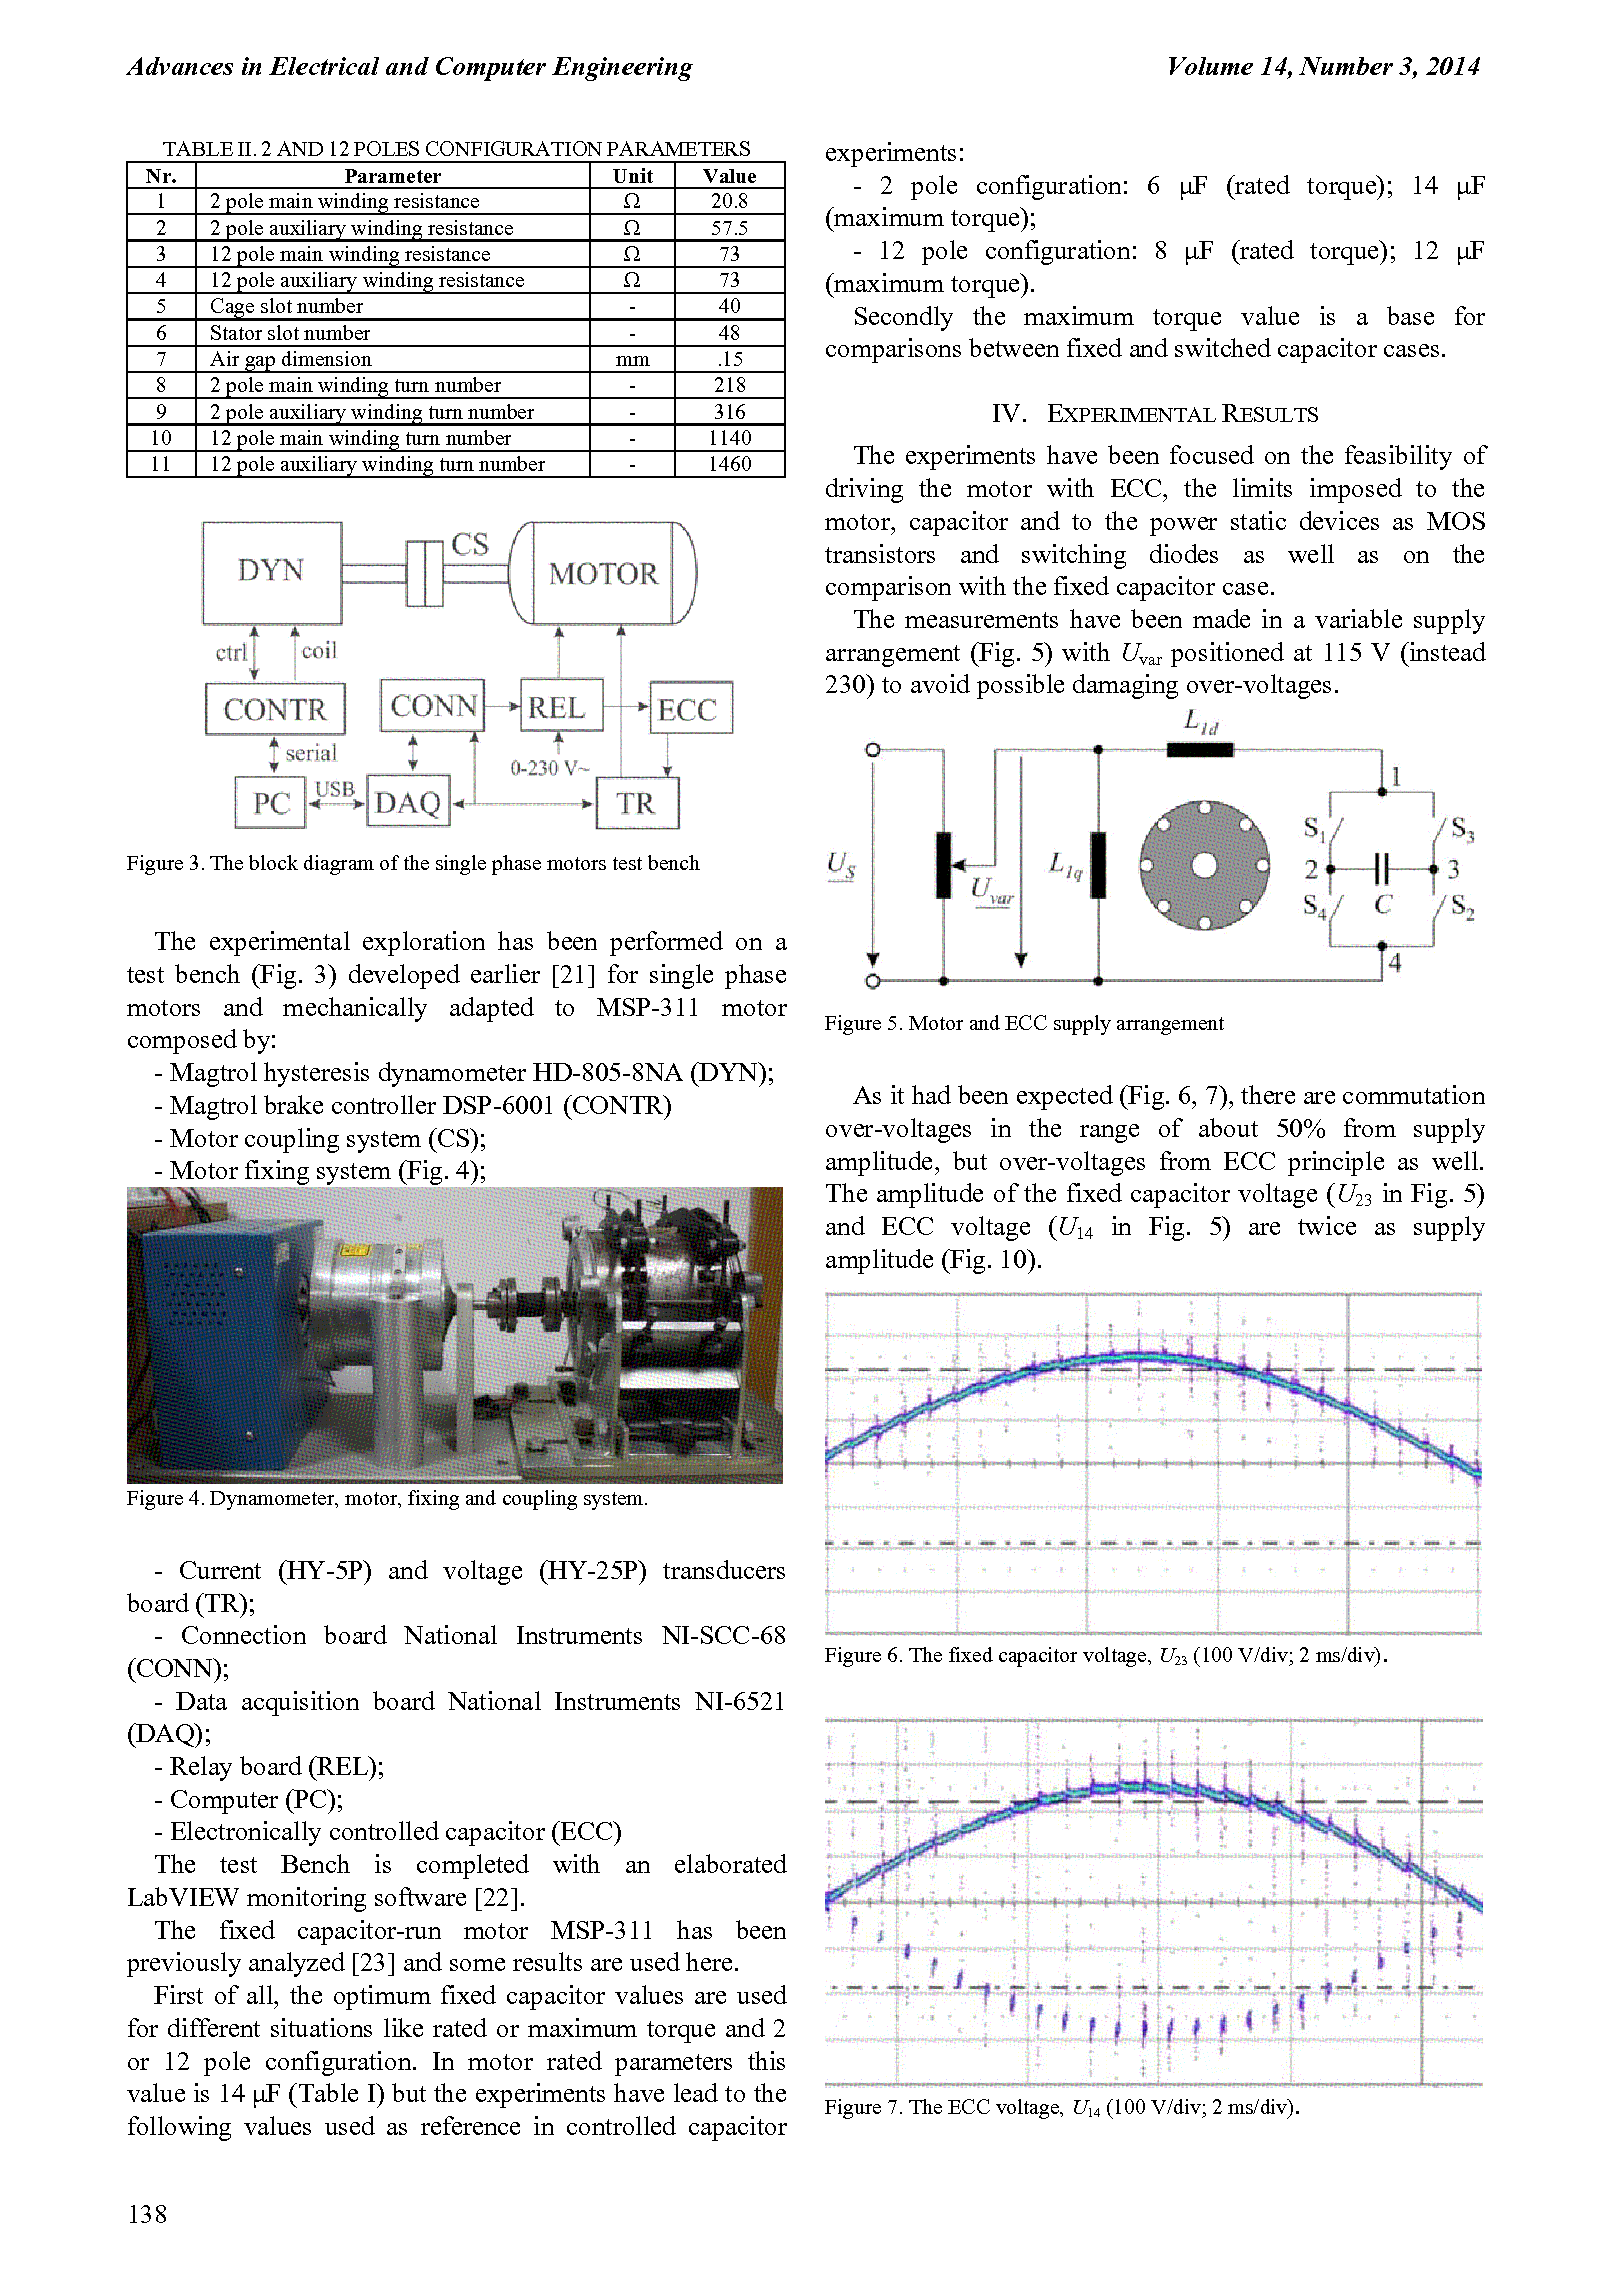 PDF Quickview for paper with DOI:10.4316/AECE.2014.03018